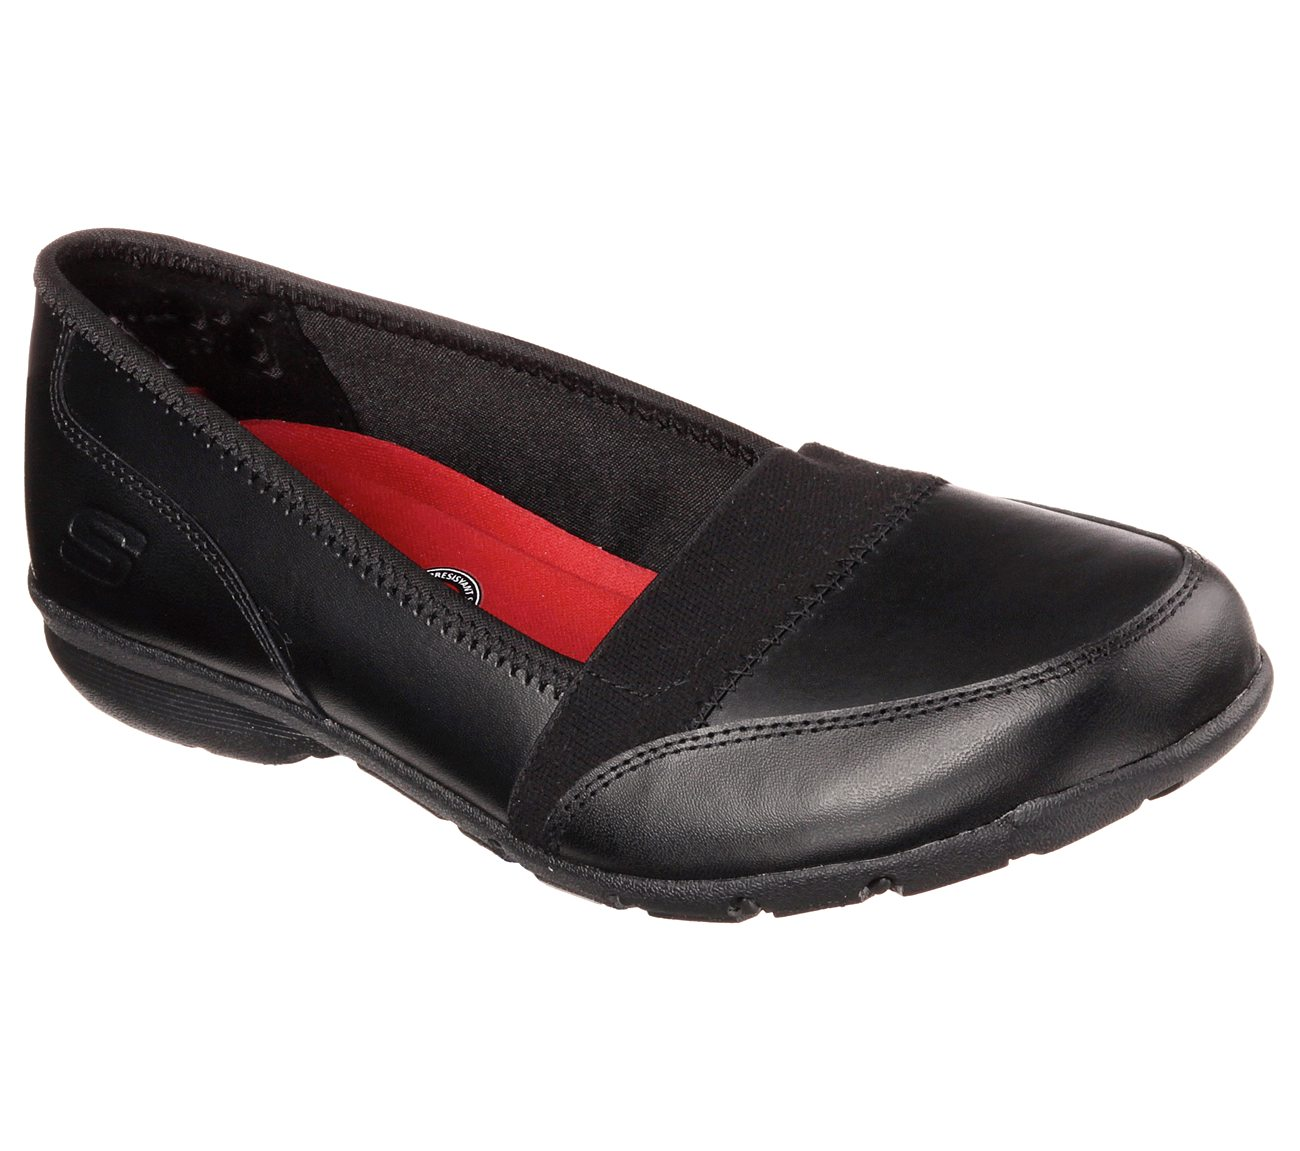 Buy SKECHERS Work Relaxed Fit: Buras SR